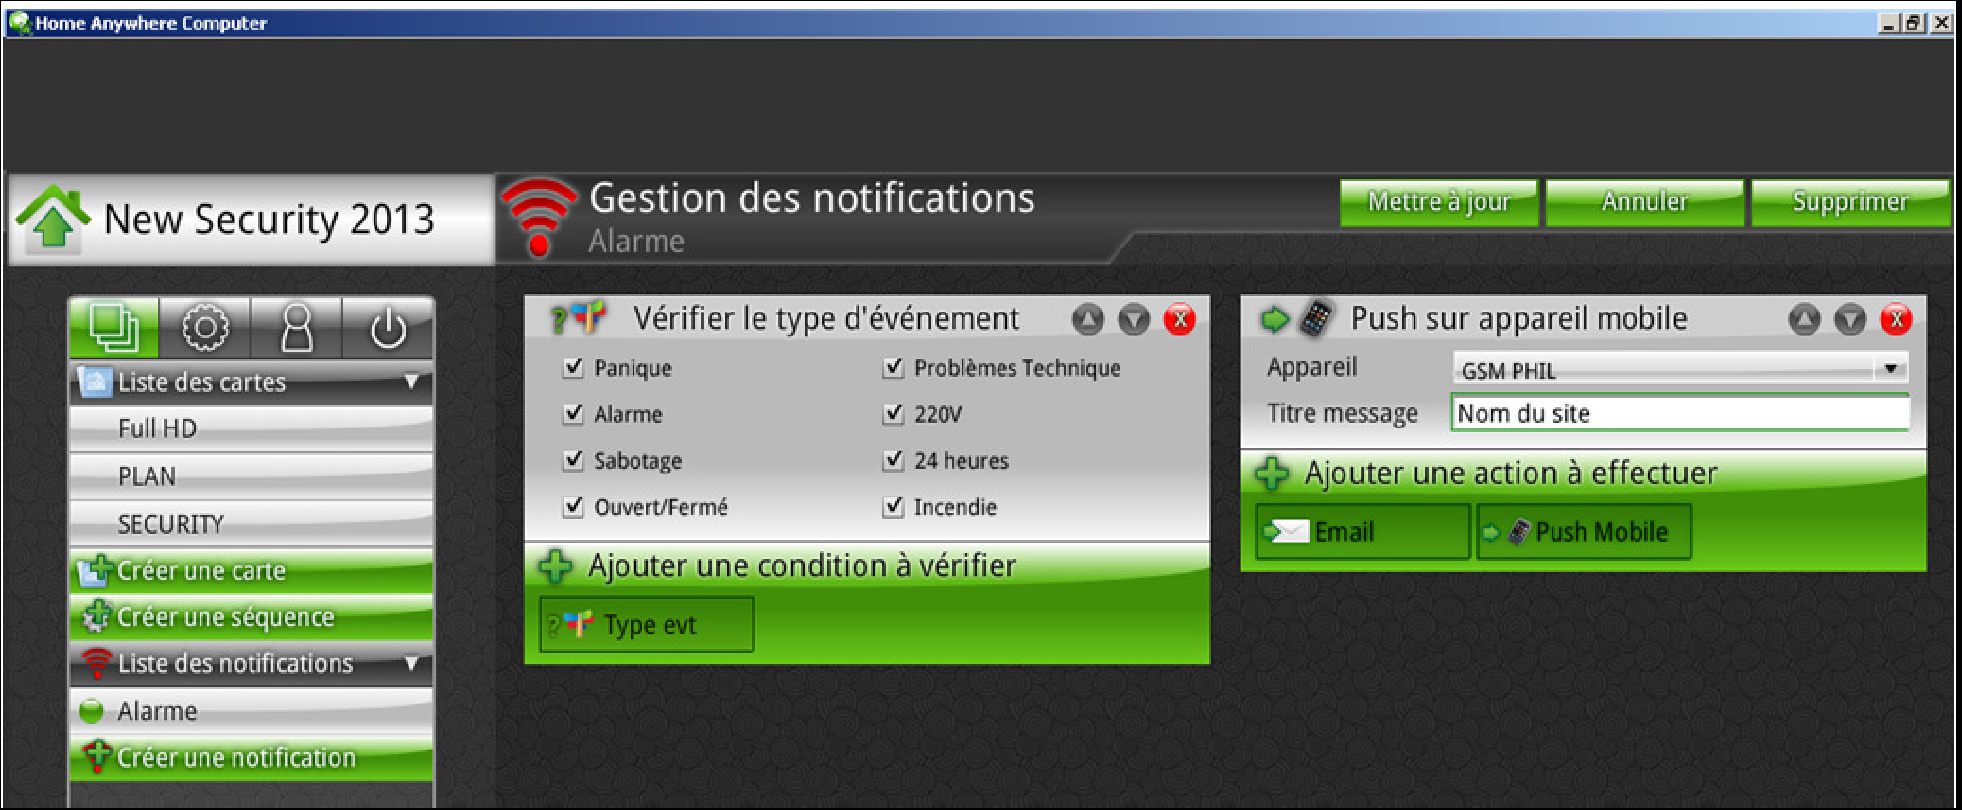 Notifications et alarmes Email via IPCOM et Home Anywhere (suite) 5.